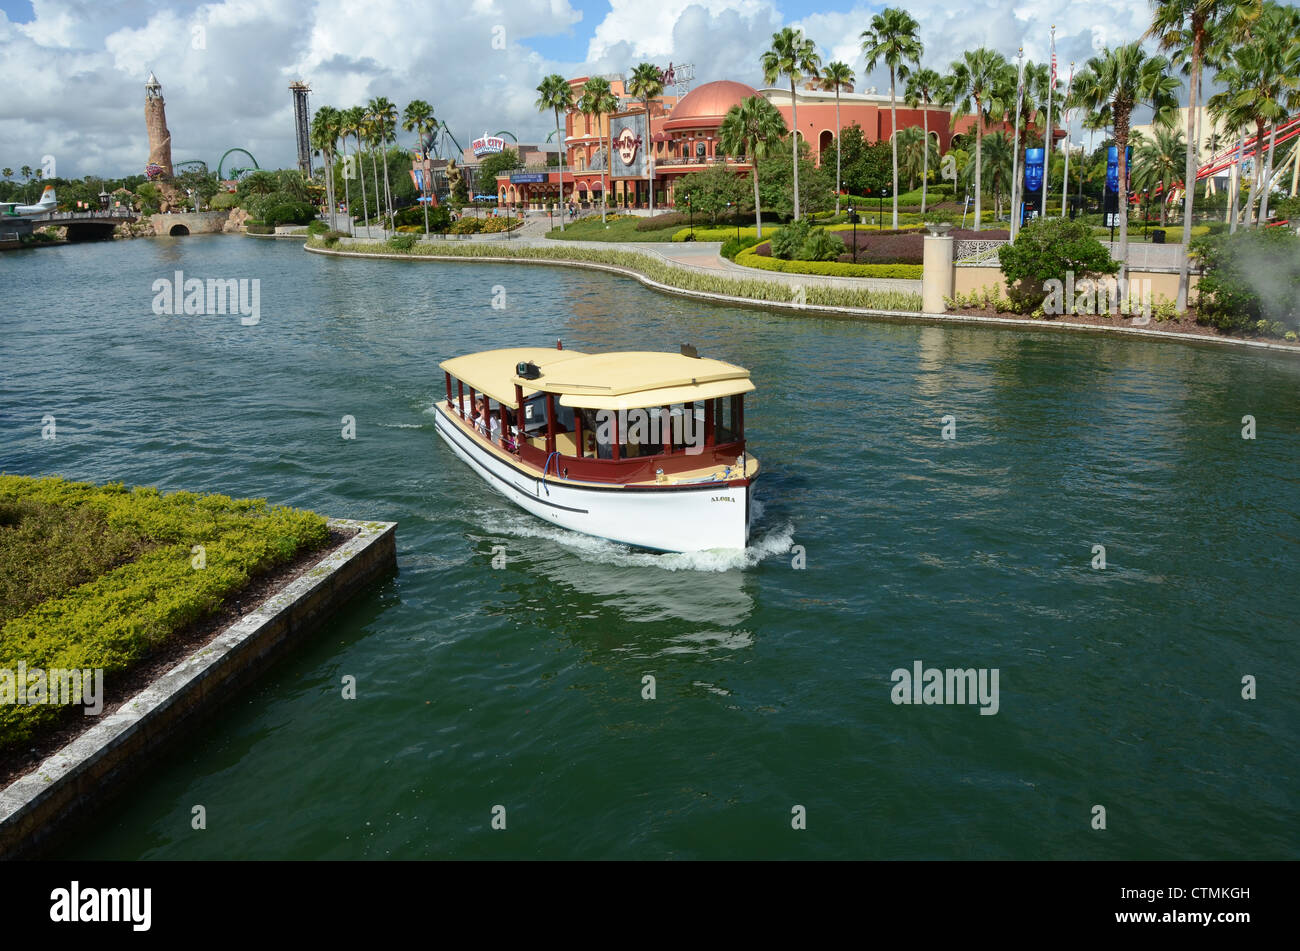 A Water taxi's that take guests staying at the on-site hotels at Universal Orlando to City Walk, and the Park - Stock Image